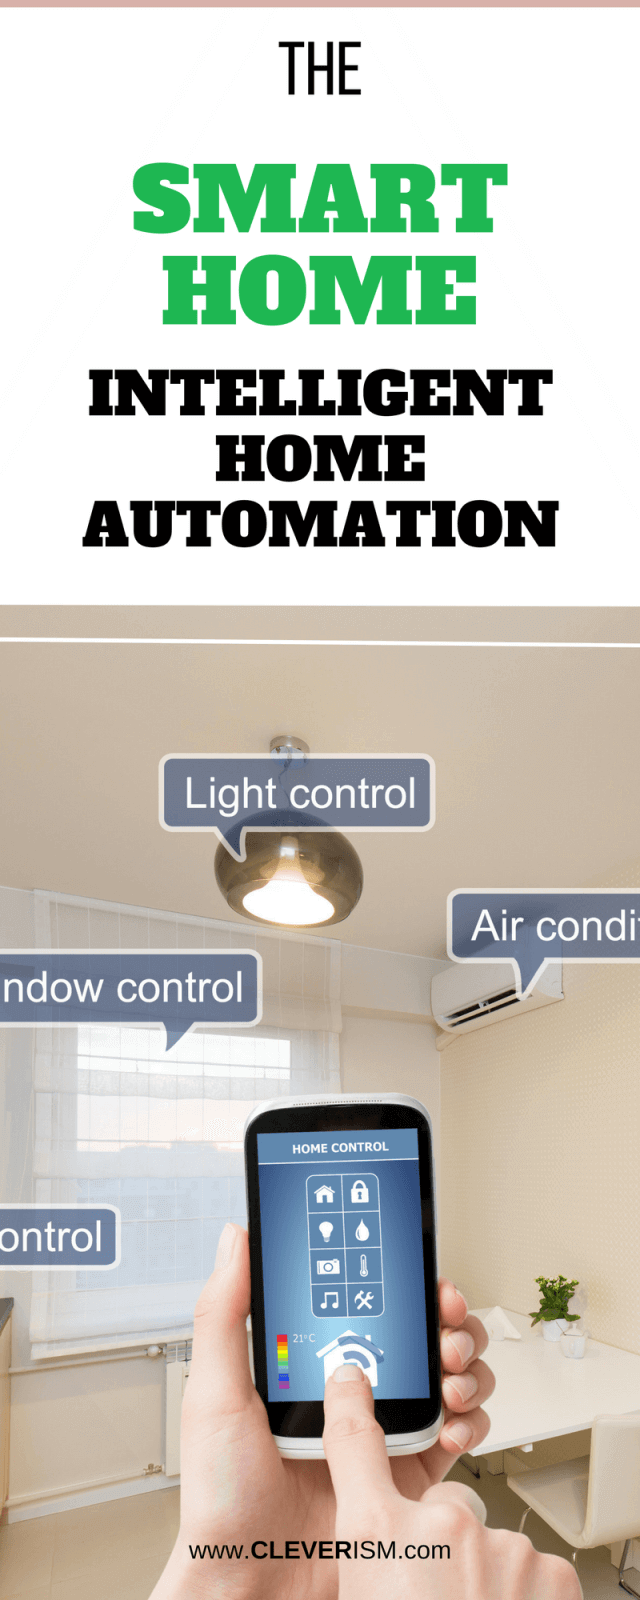 The smart home intelligent home automation for Smart home automation